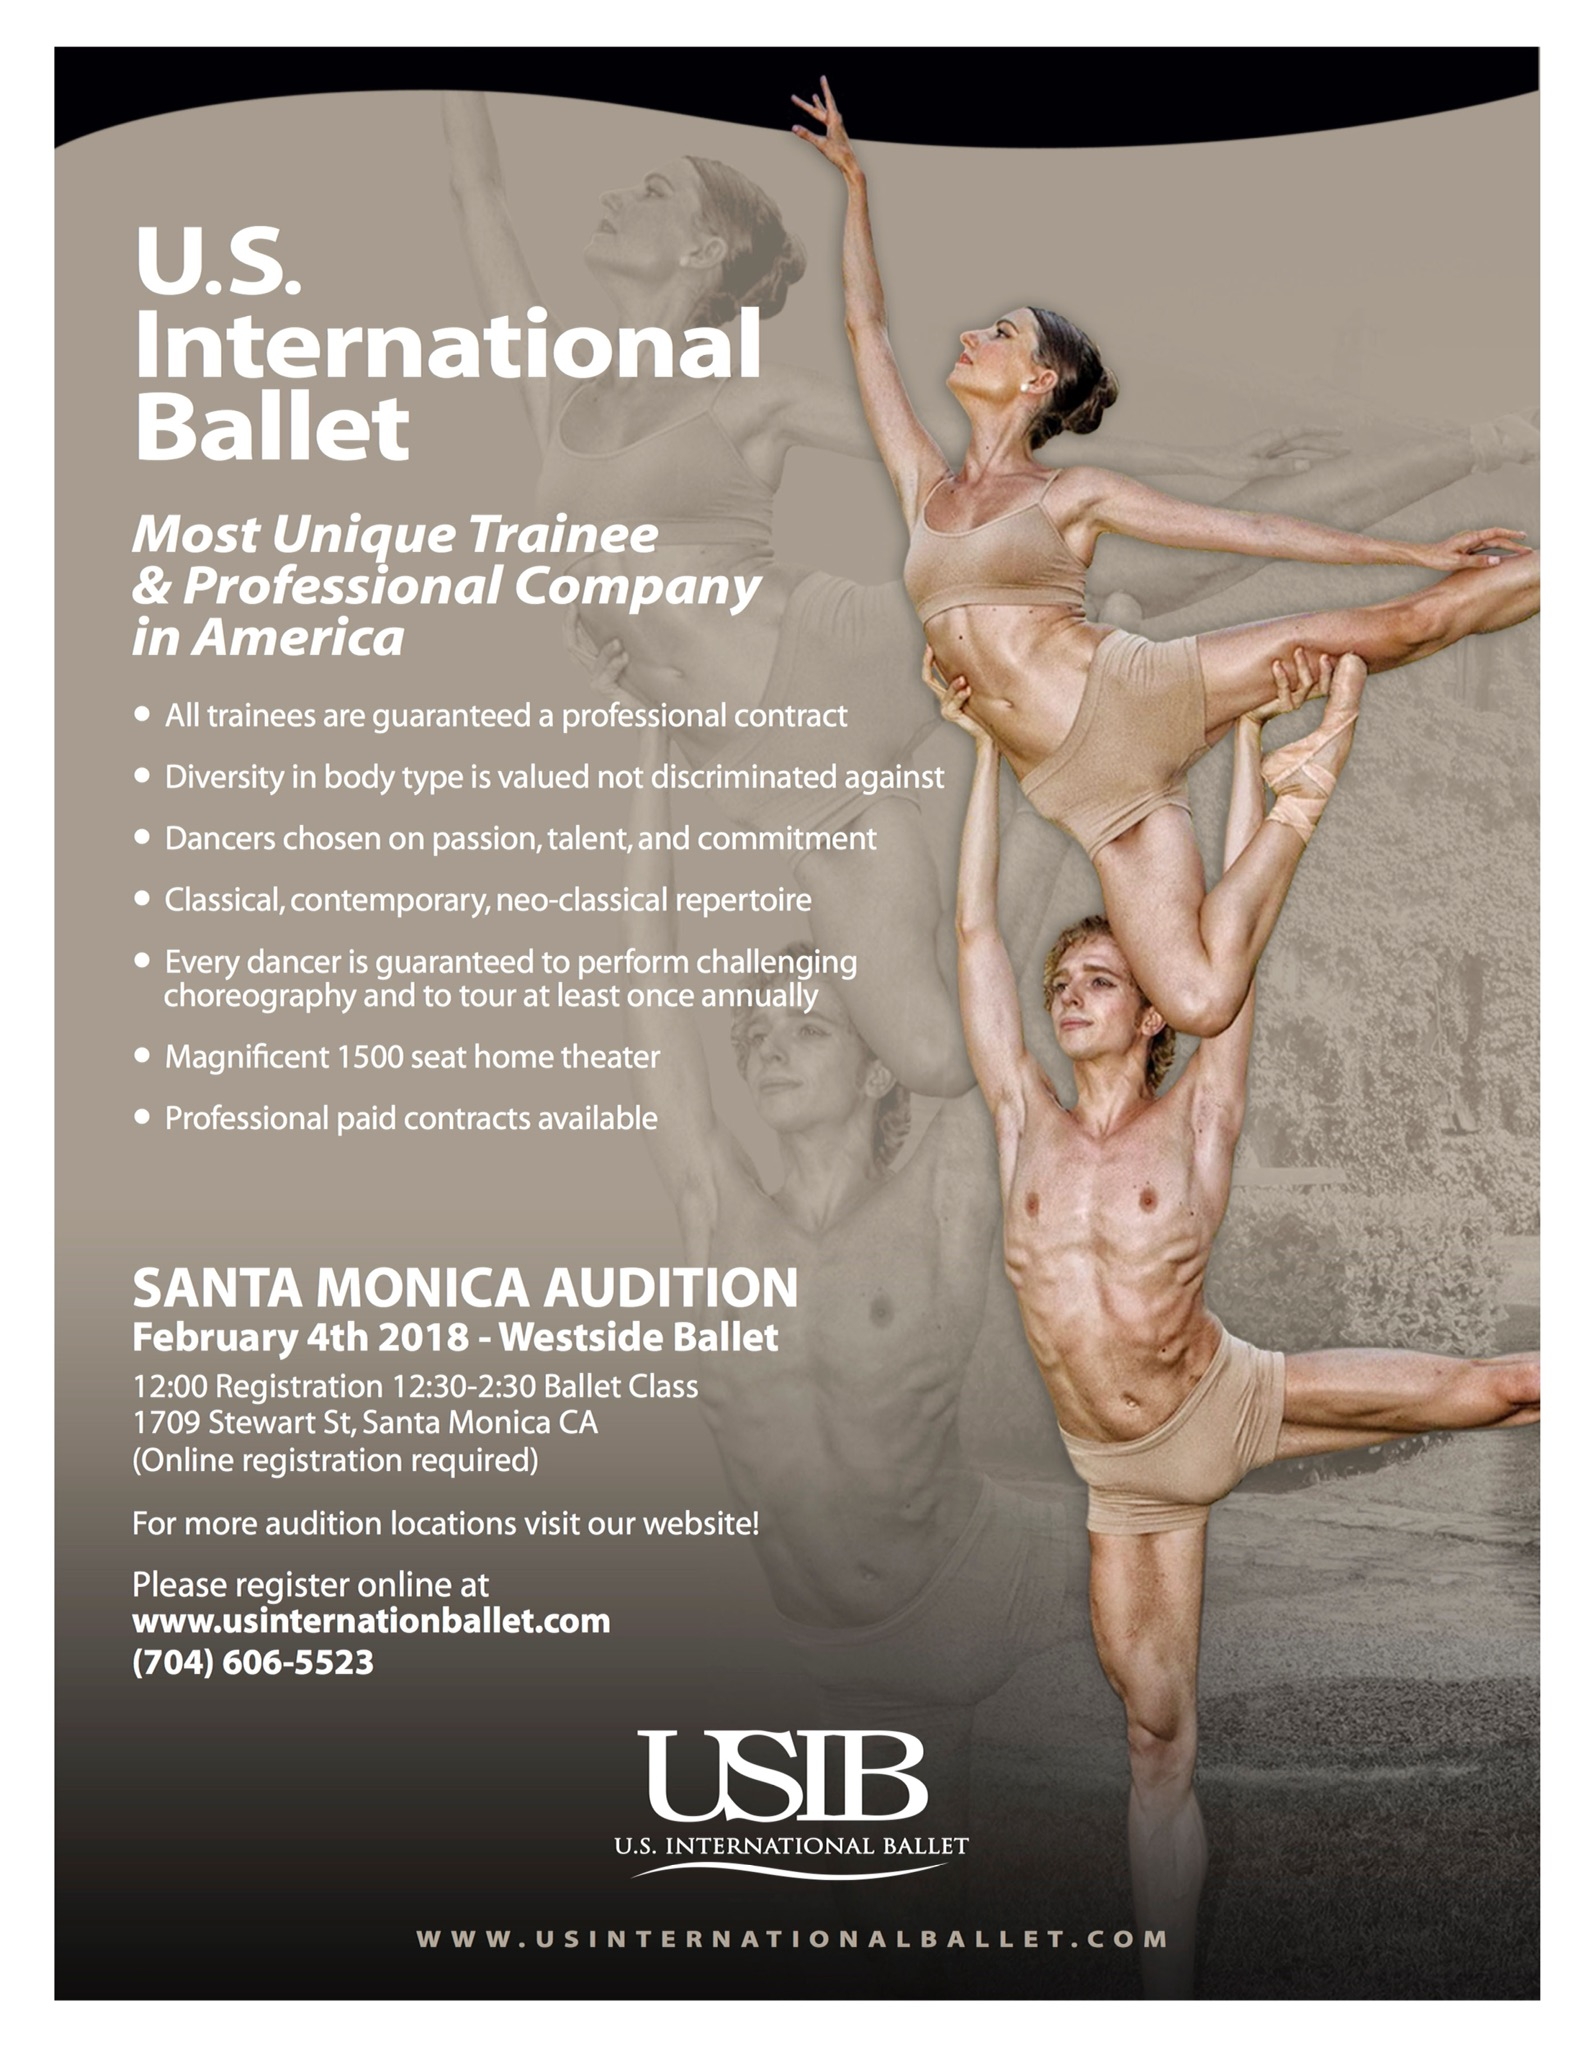 U.S. International Ballet Audition